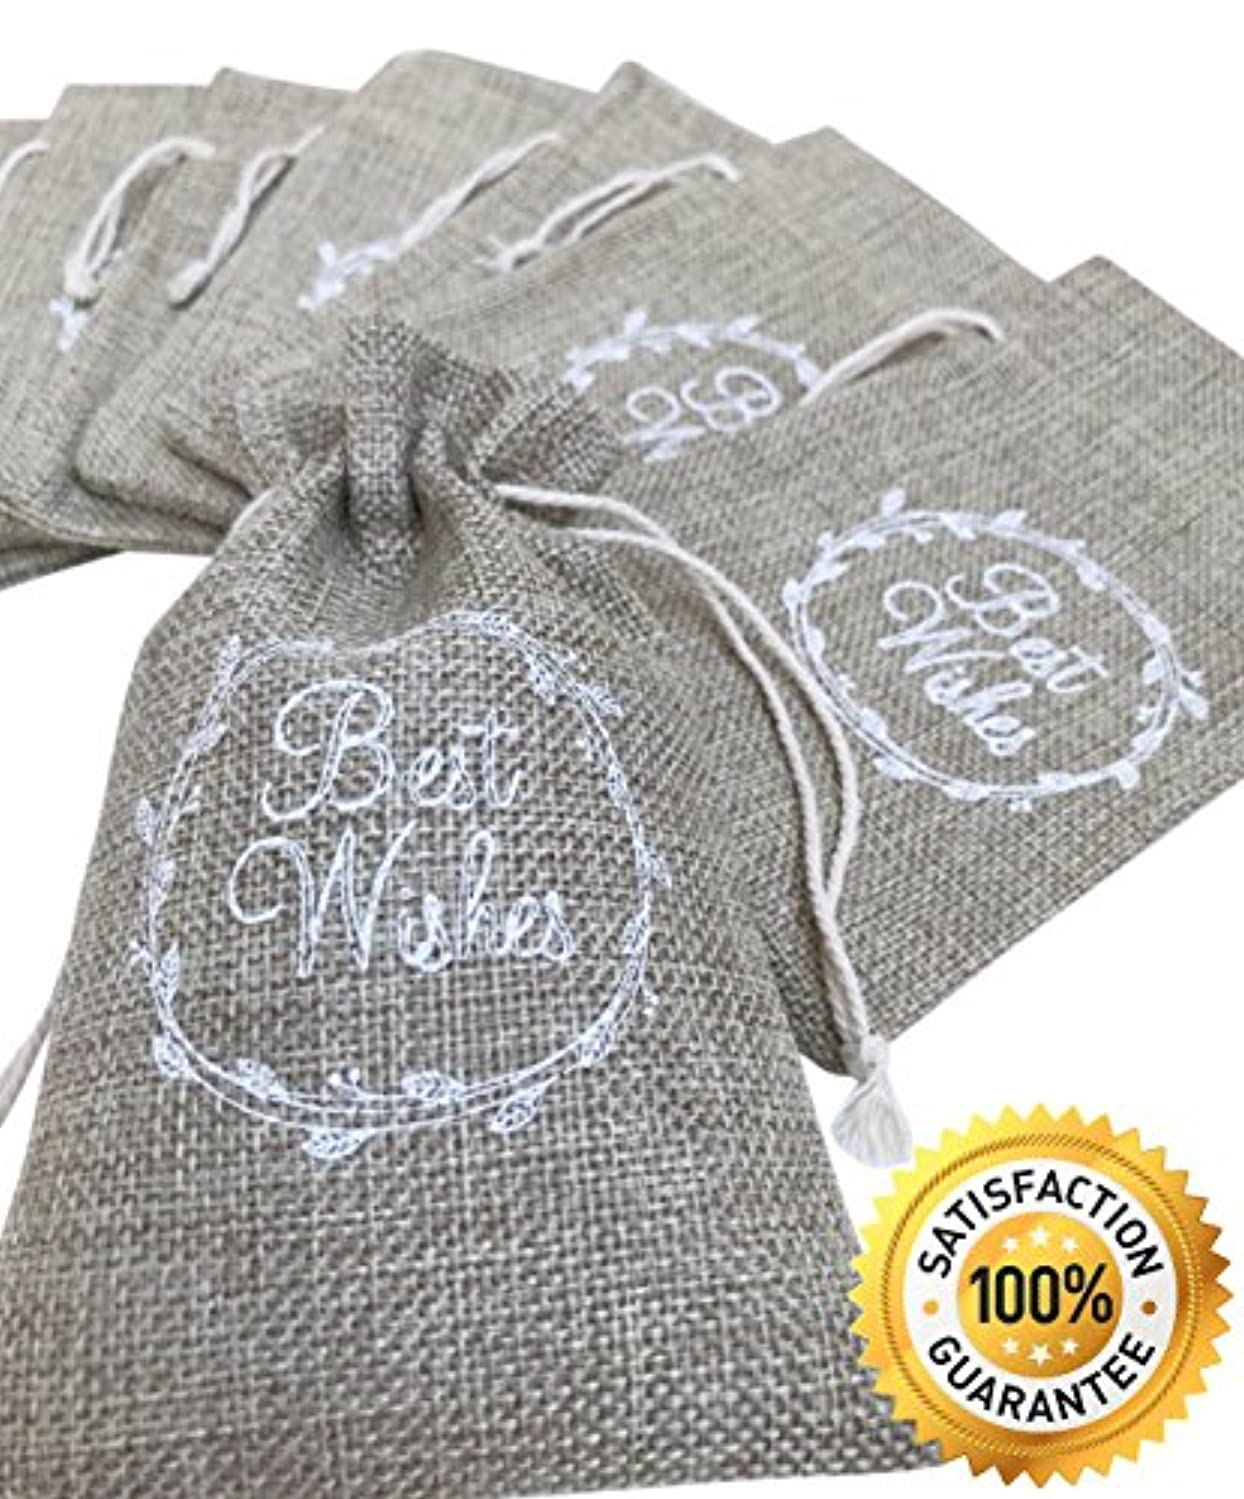 """Partyedge Wedding Party Favors   Small Burlap Bag with Drawstring 3.93"""" x 5.90""""   Baby Shower Favors Bag   Party Favor Gift Bags   Vintage Guest Gifts   Pack of 30(White)"""